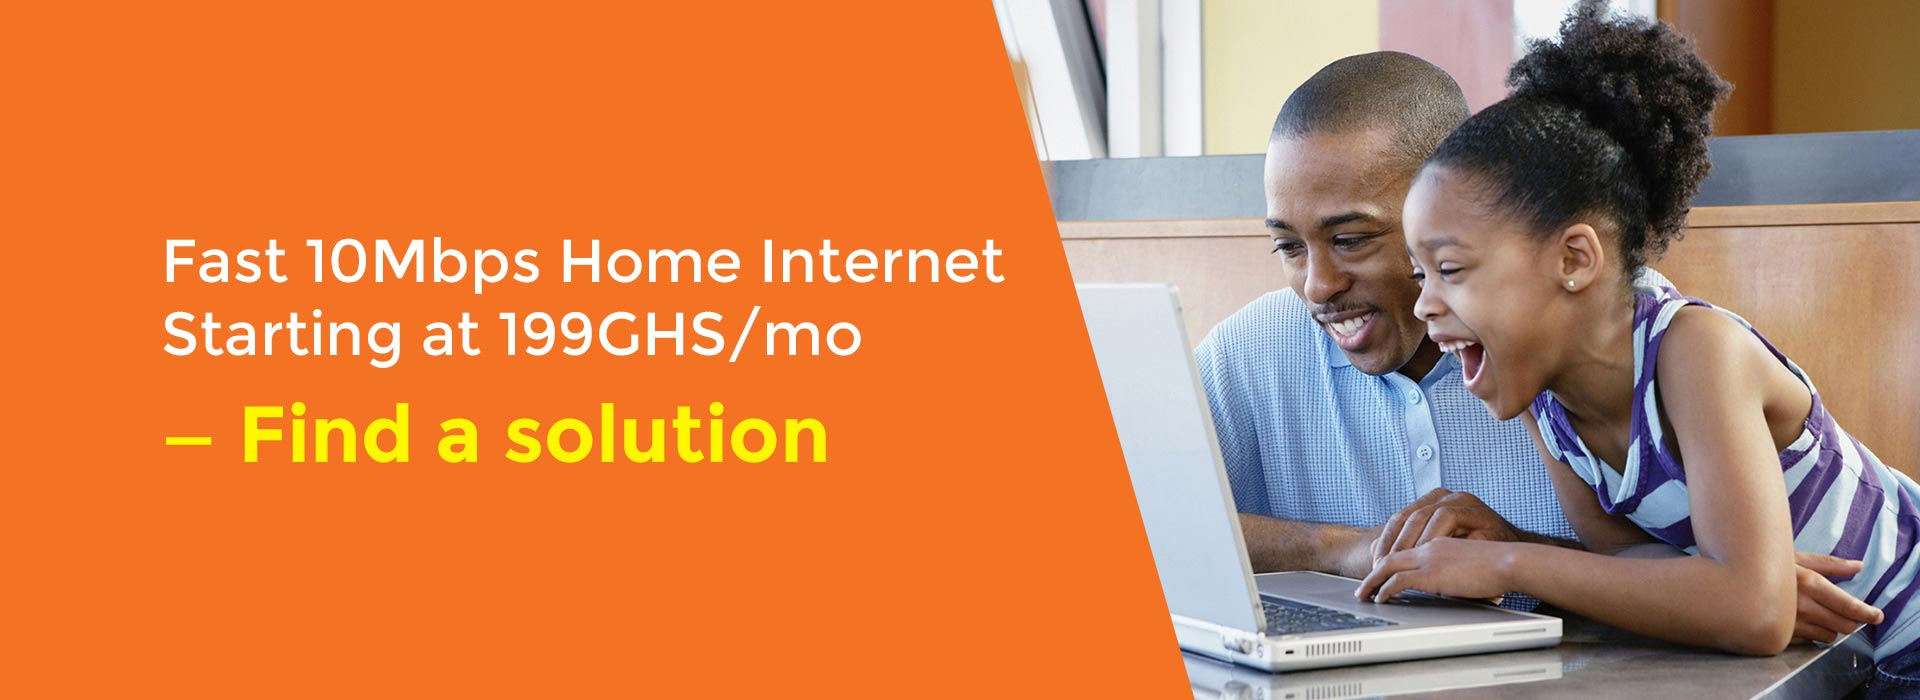 Teledata-Home-Internet-solutions-50